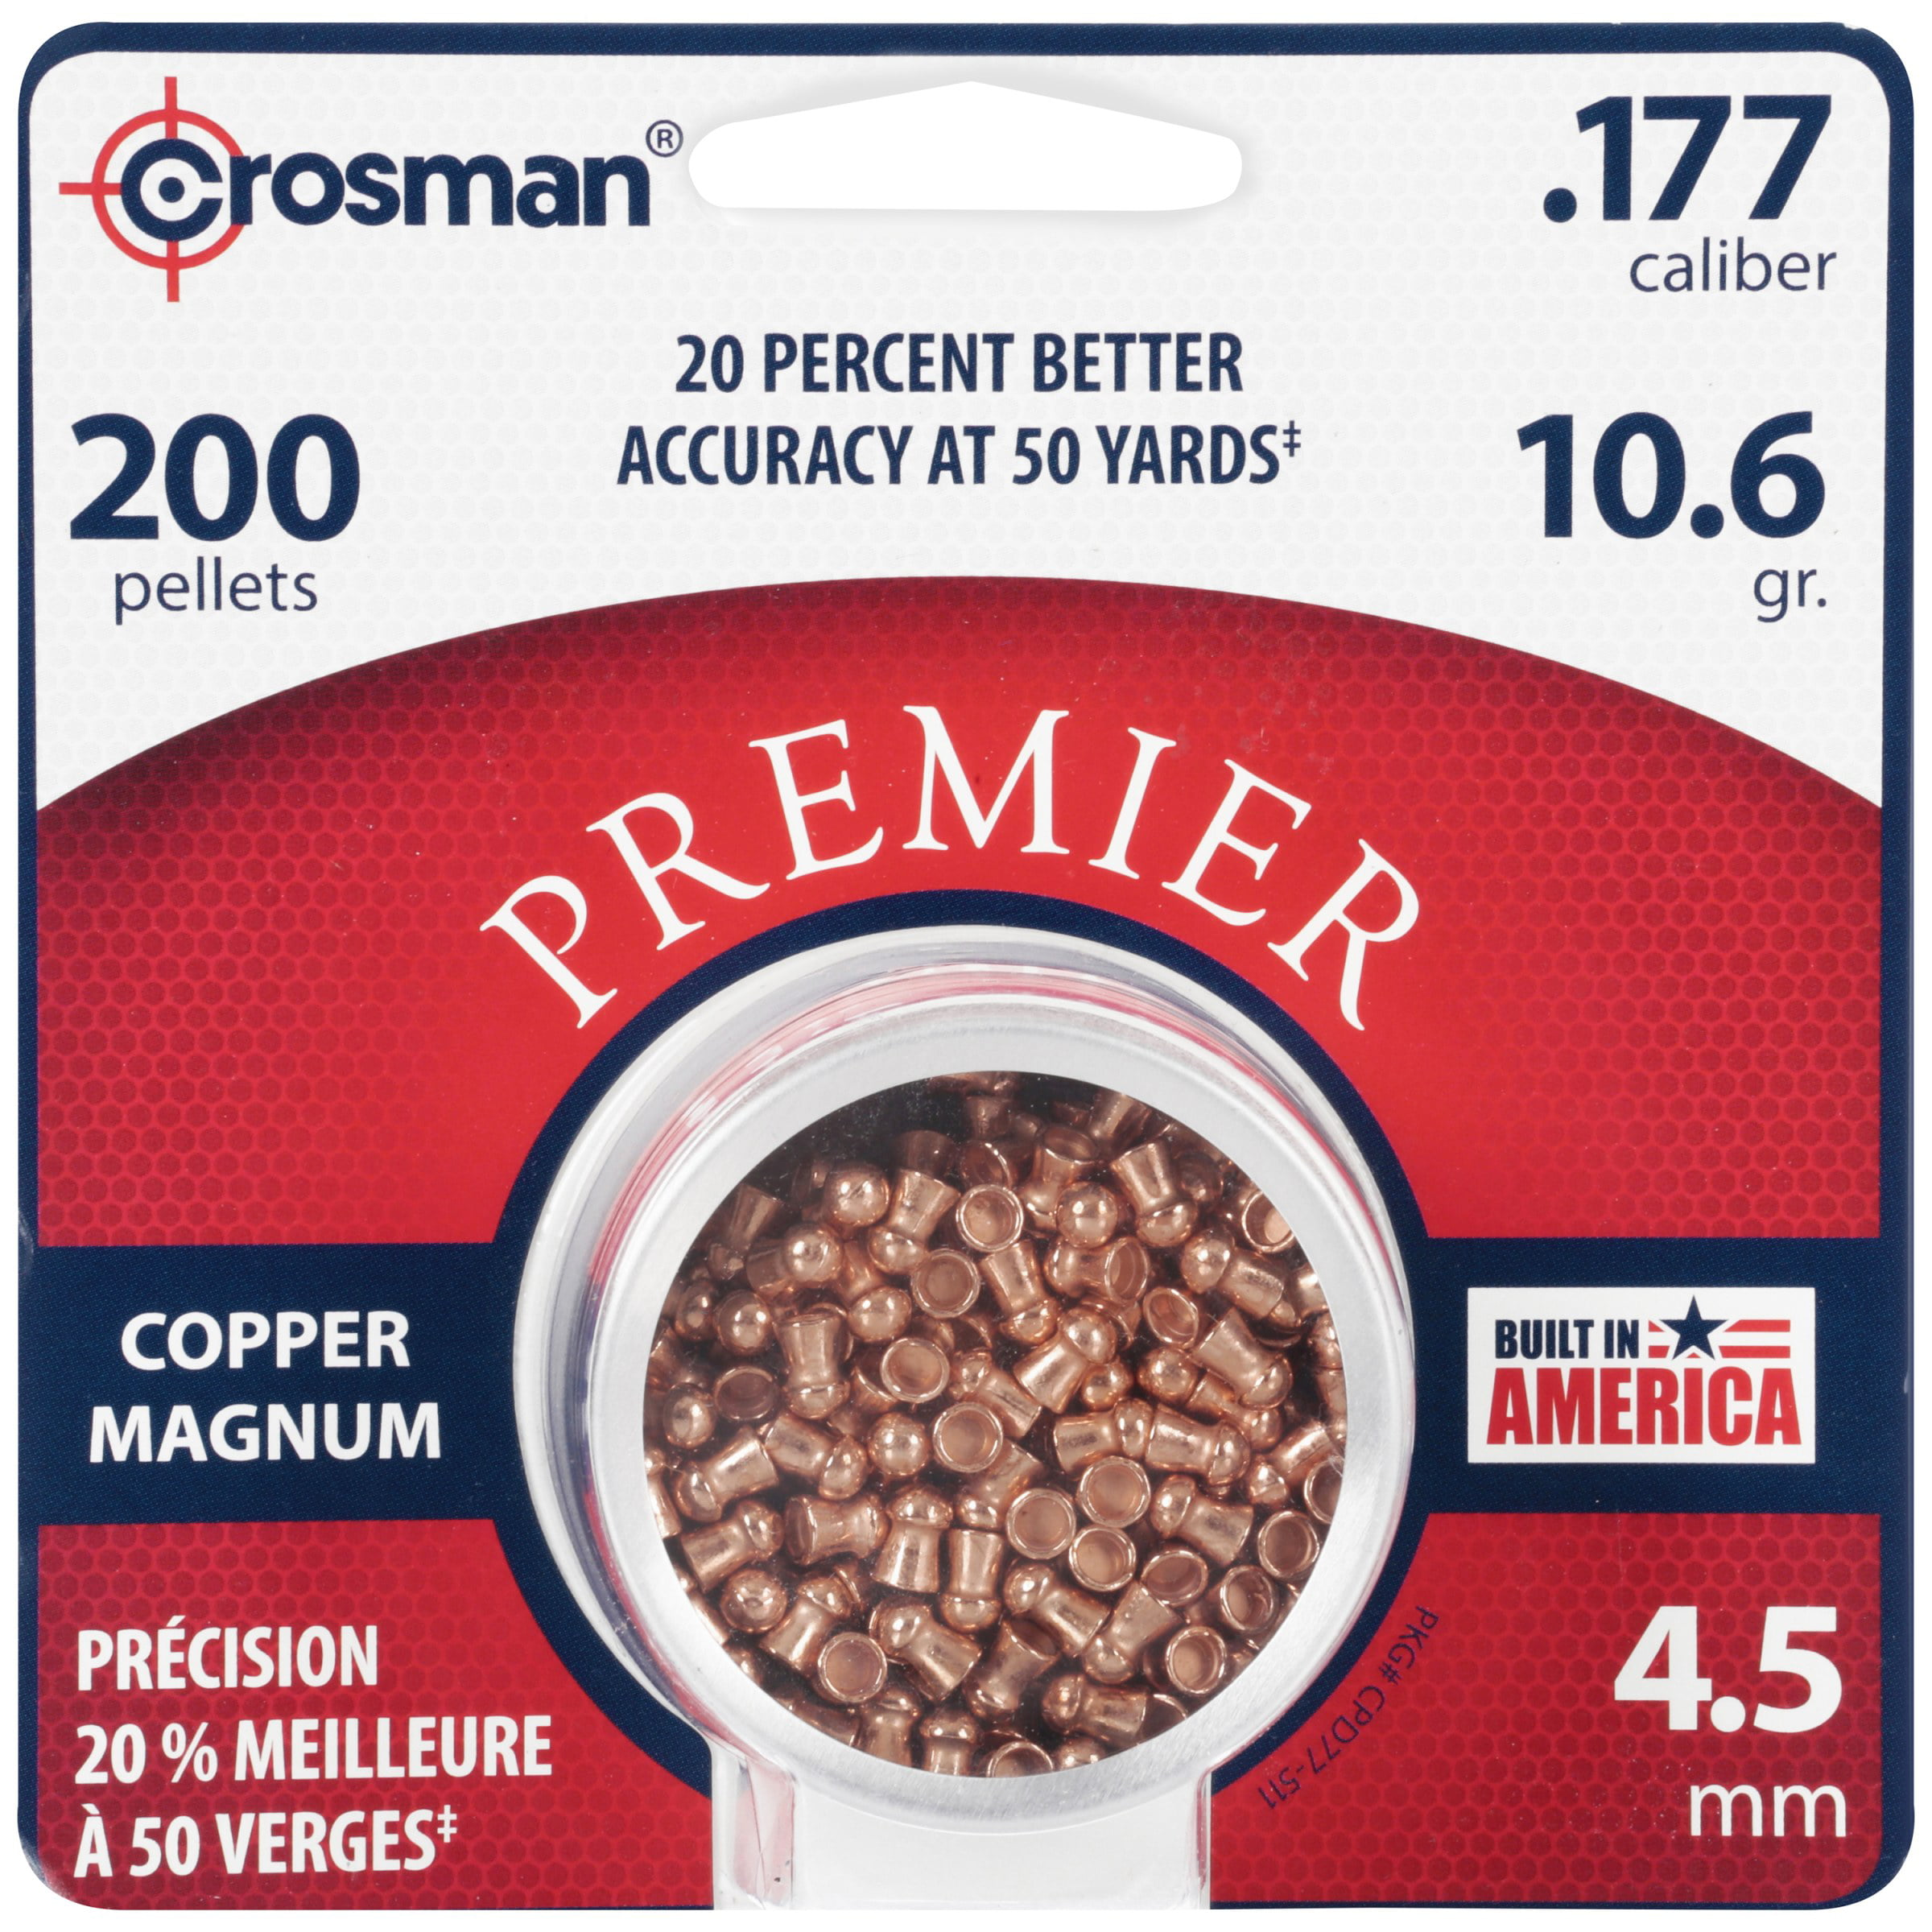 Crosman Copper Magnum Domed Pellet .177 Caliber 10.6 Grain 200Ct. CPD77 by Crosman